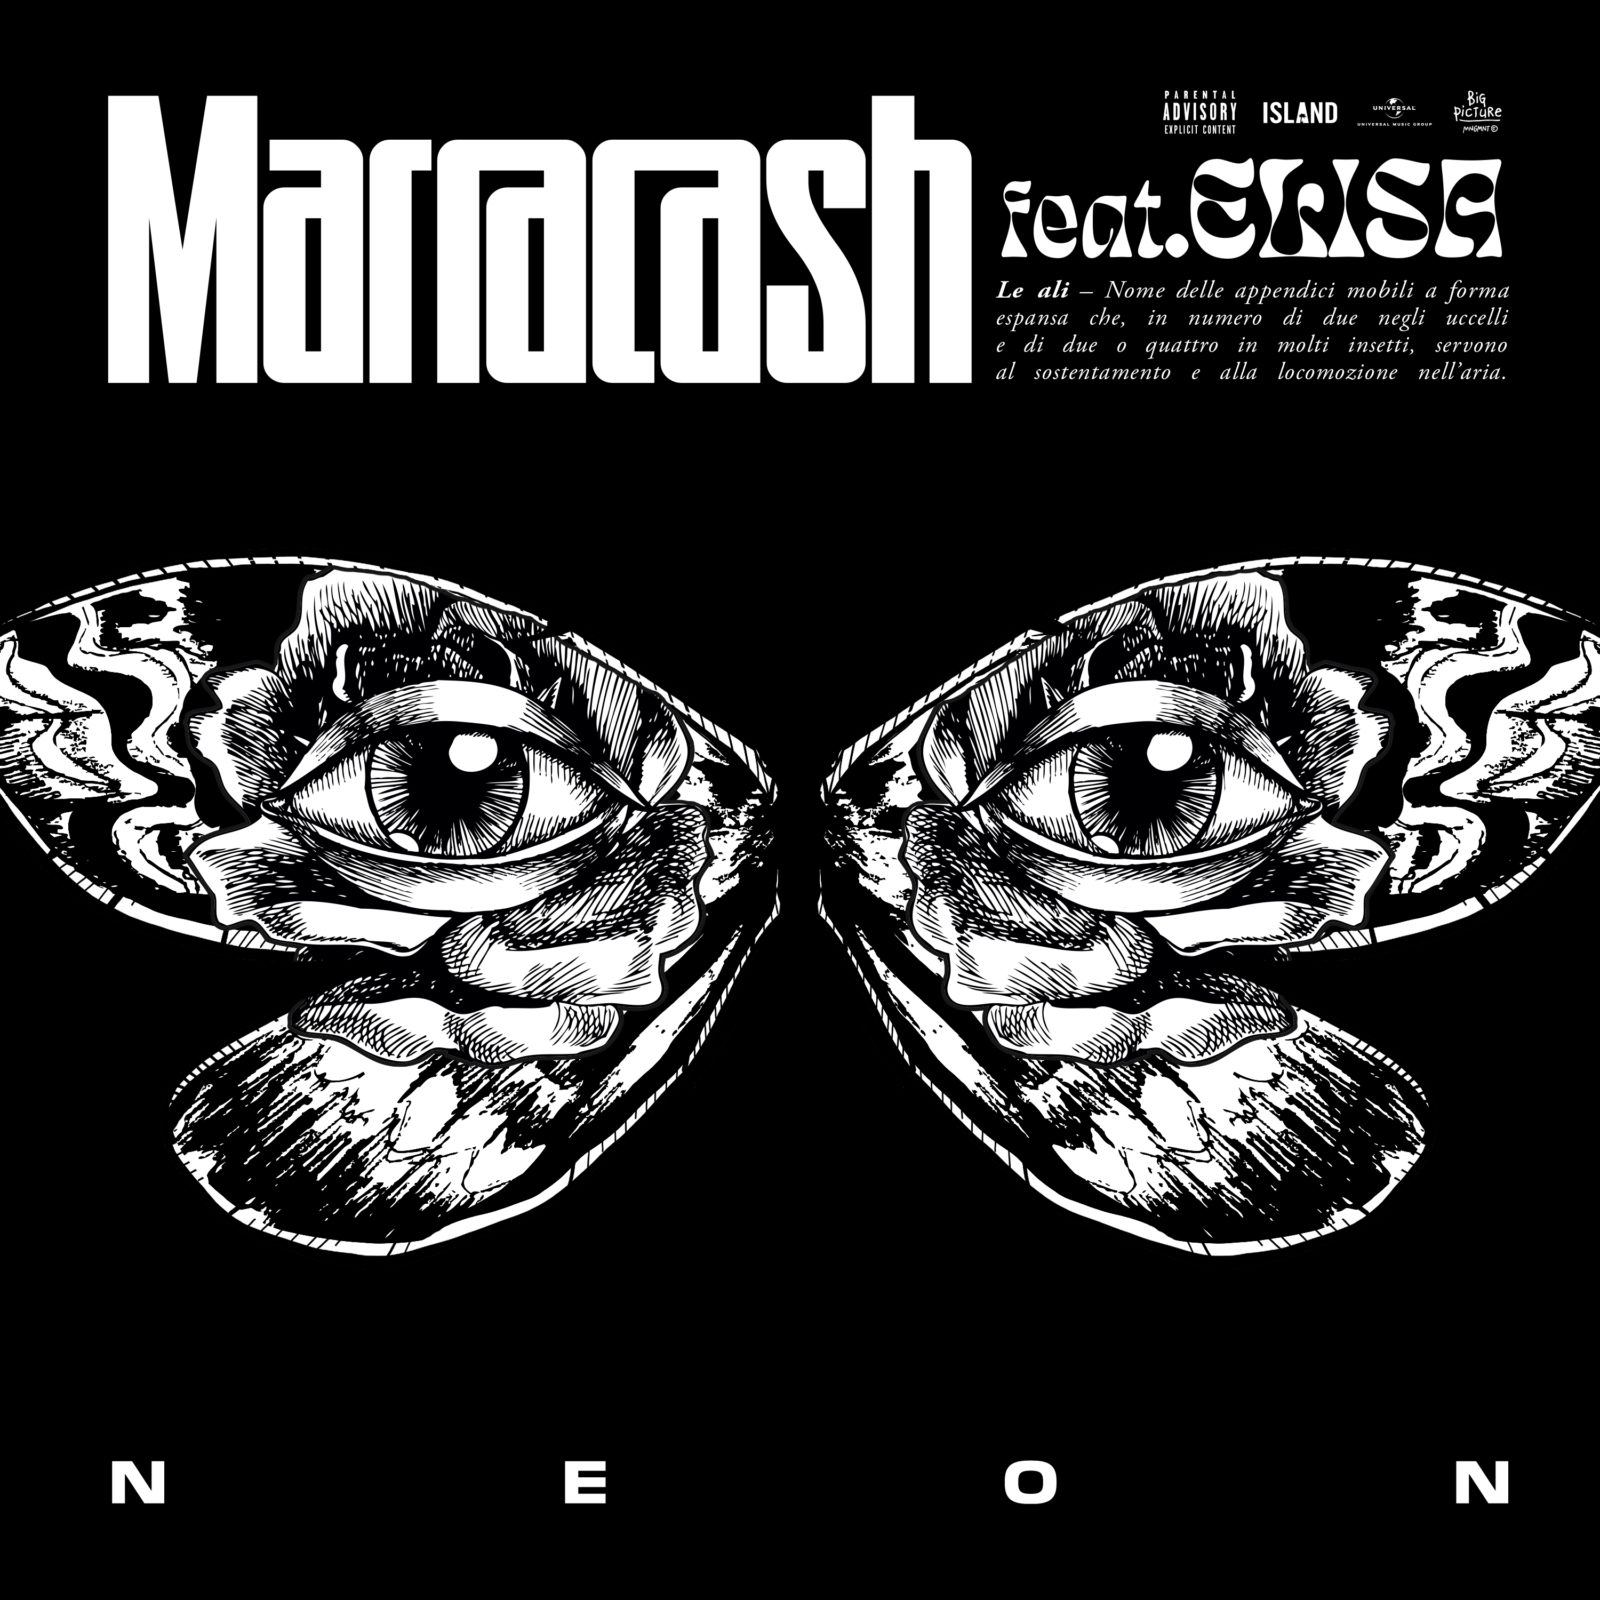 MARRACASH - NEON - (LE ALI) (FEAT ELISA)